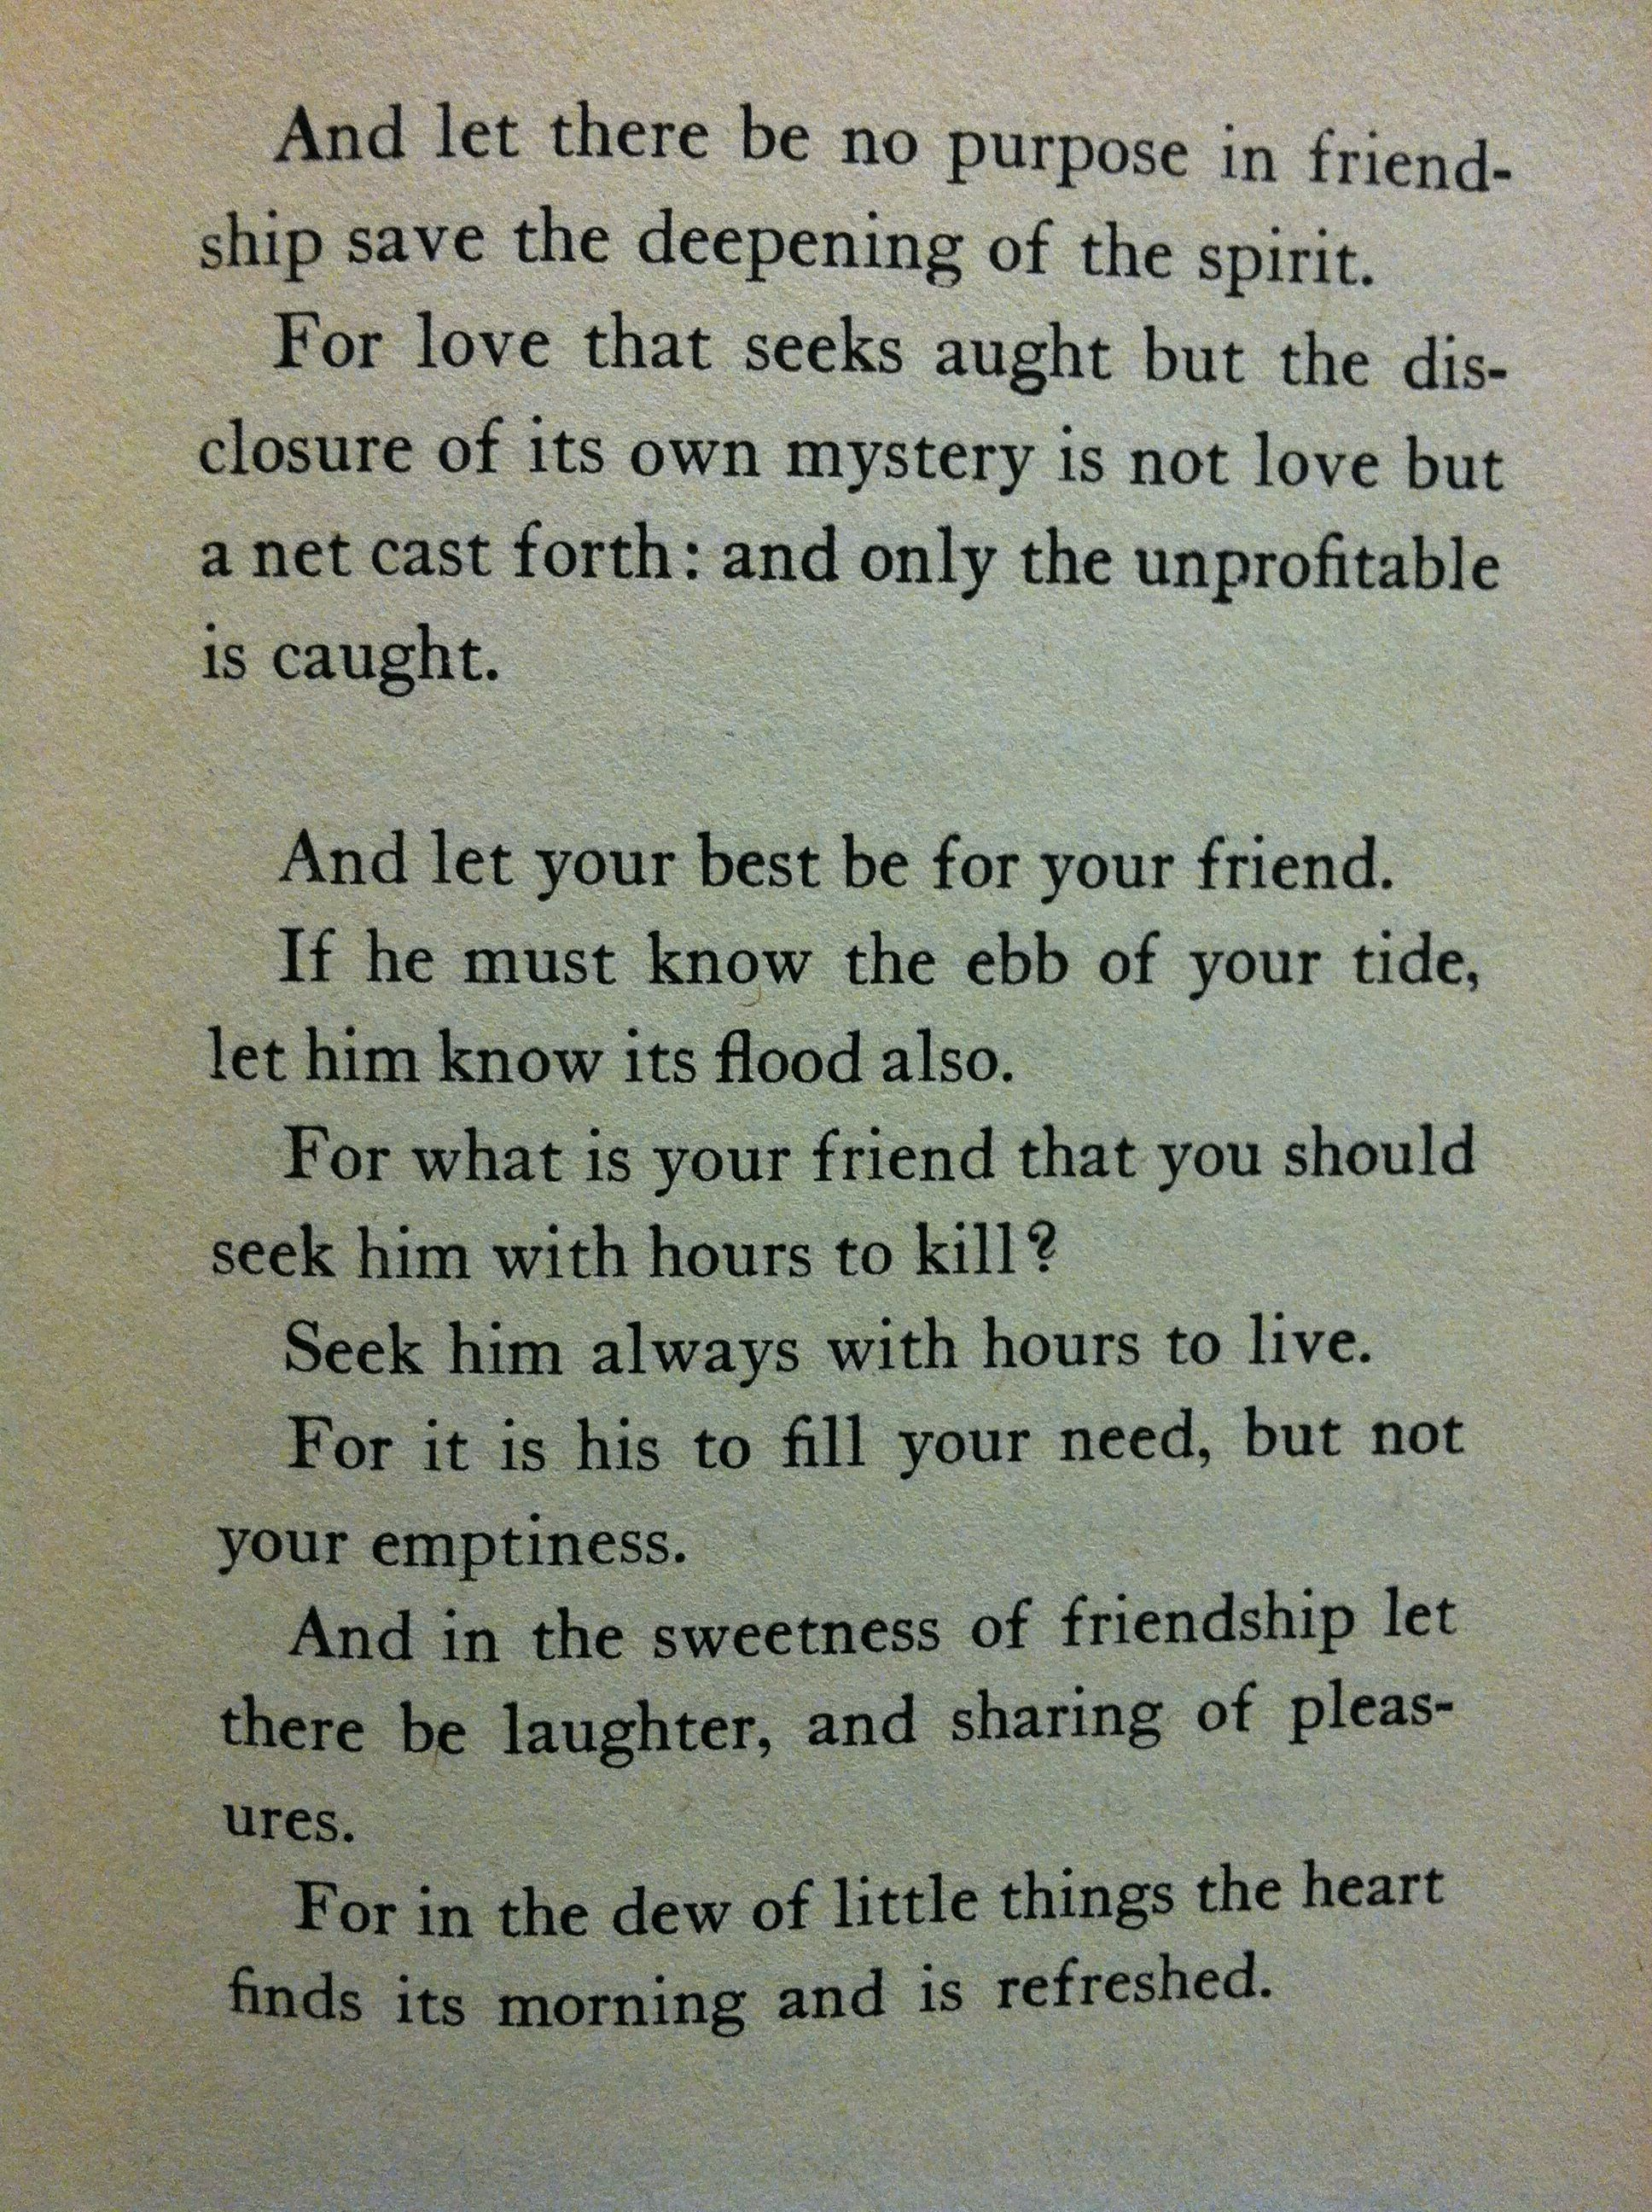 On Friendship. The Prophet - Kahlil Gibran | Friendship quotes, Kahlil  gibran quotes, Prophet quotes